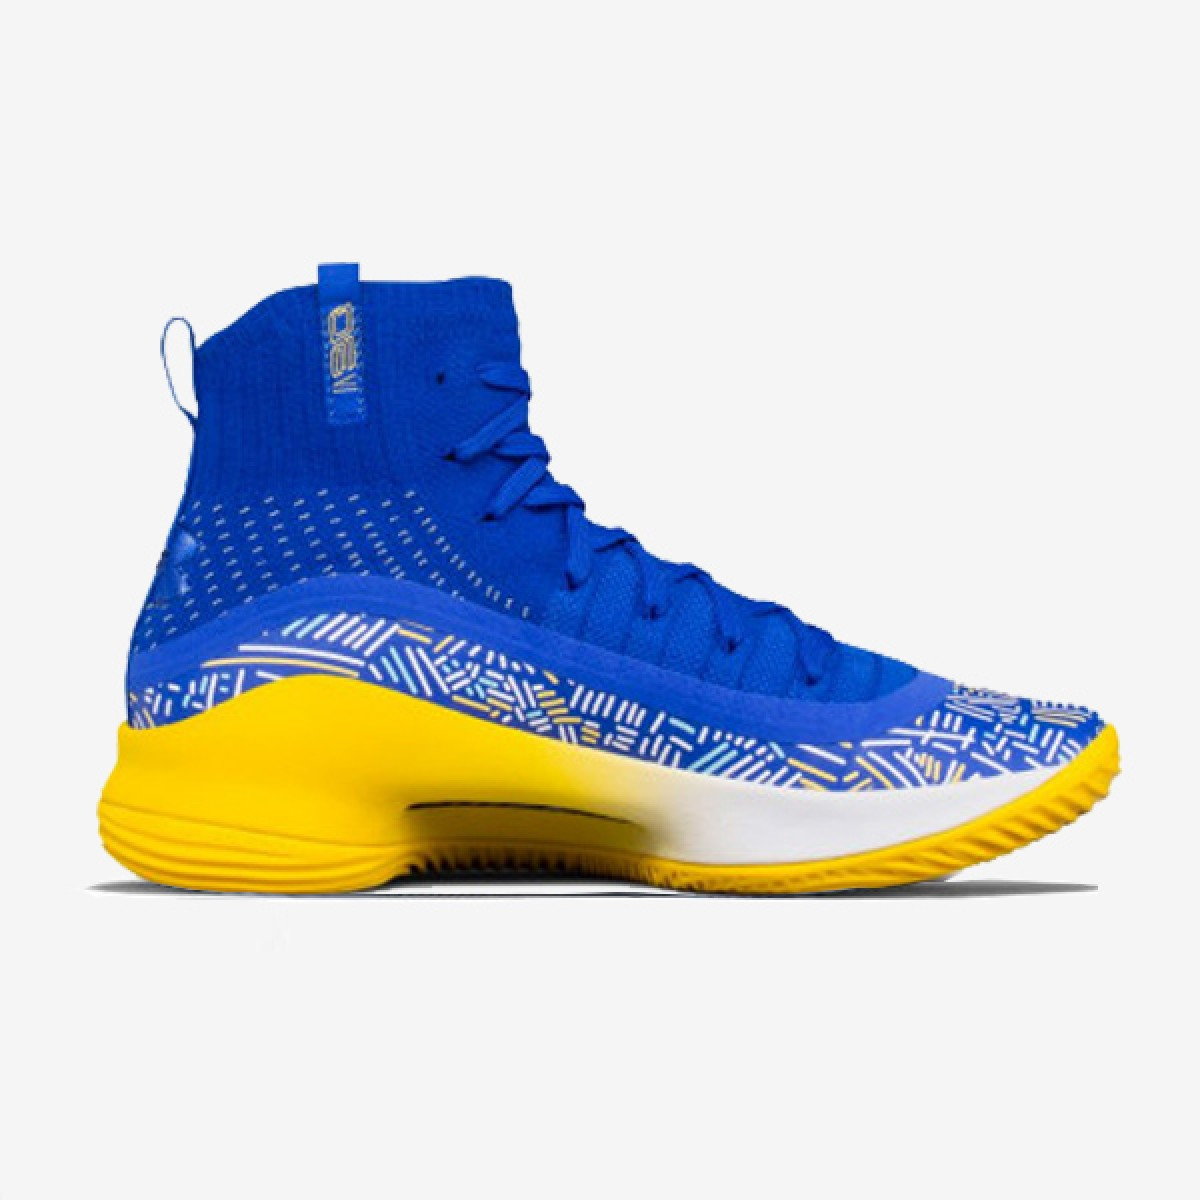 e0d5fb8204a0 Buy Under Armour Curry 4 GS  More Fun  Basketball shoes   sneakers